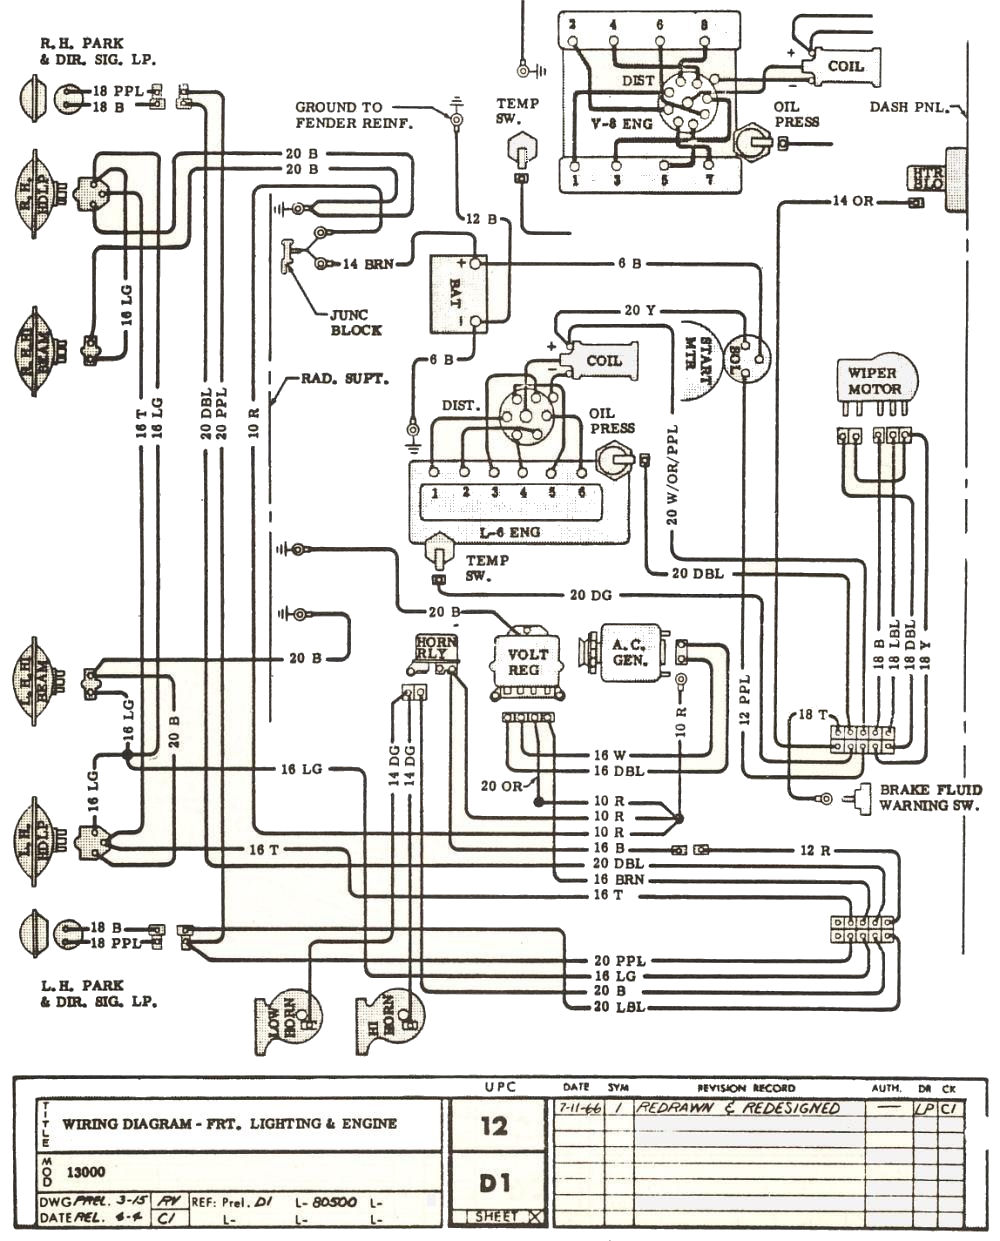 [WRG-2586] 67 Chevelle Dash Wiring Diagram